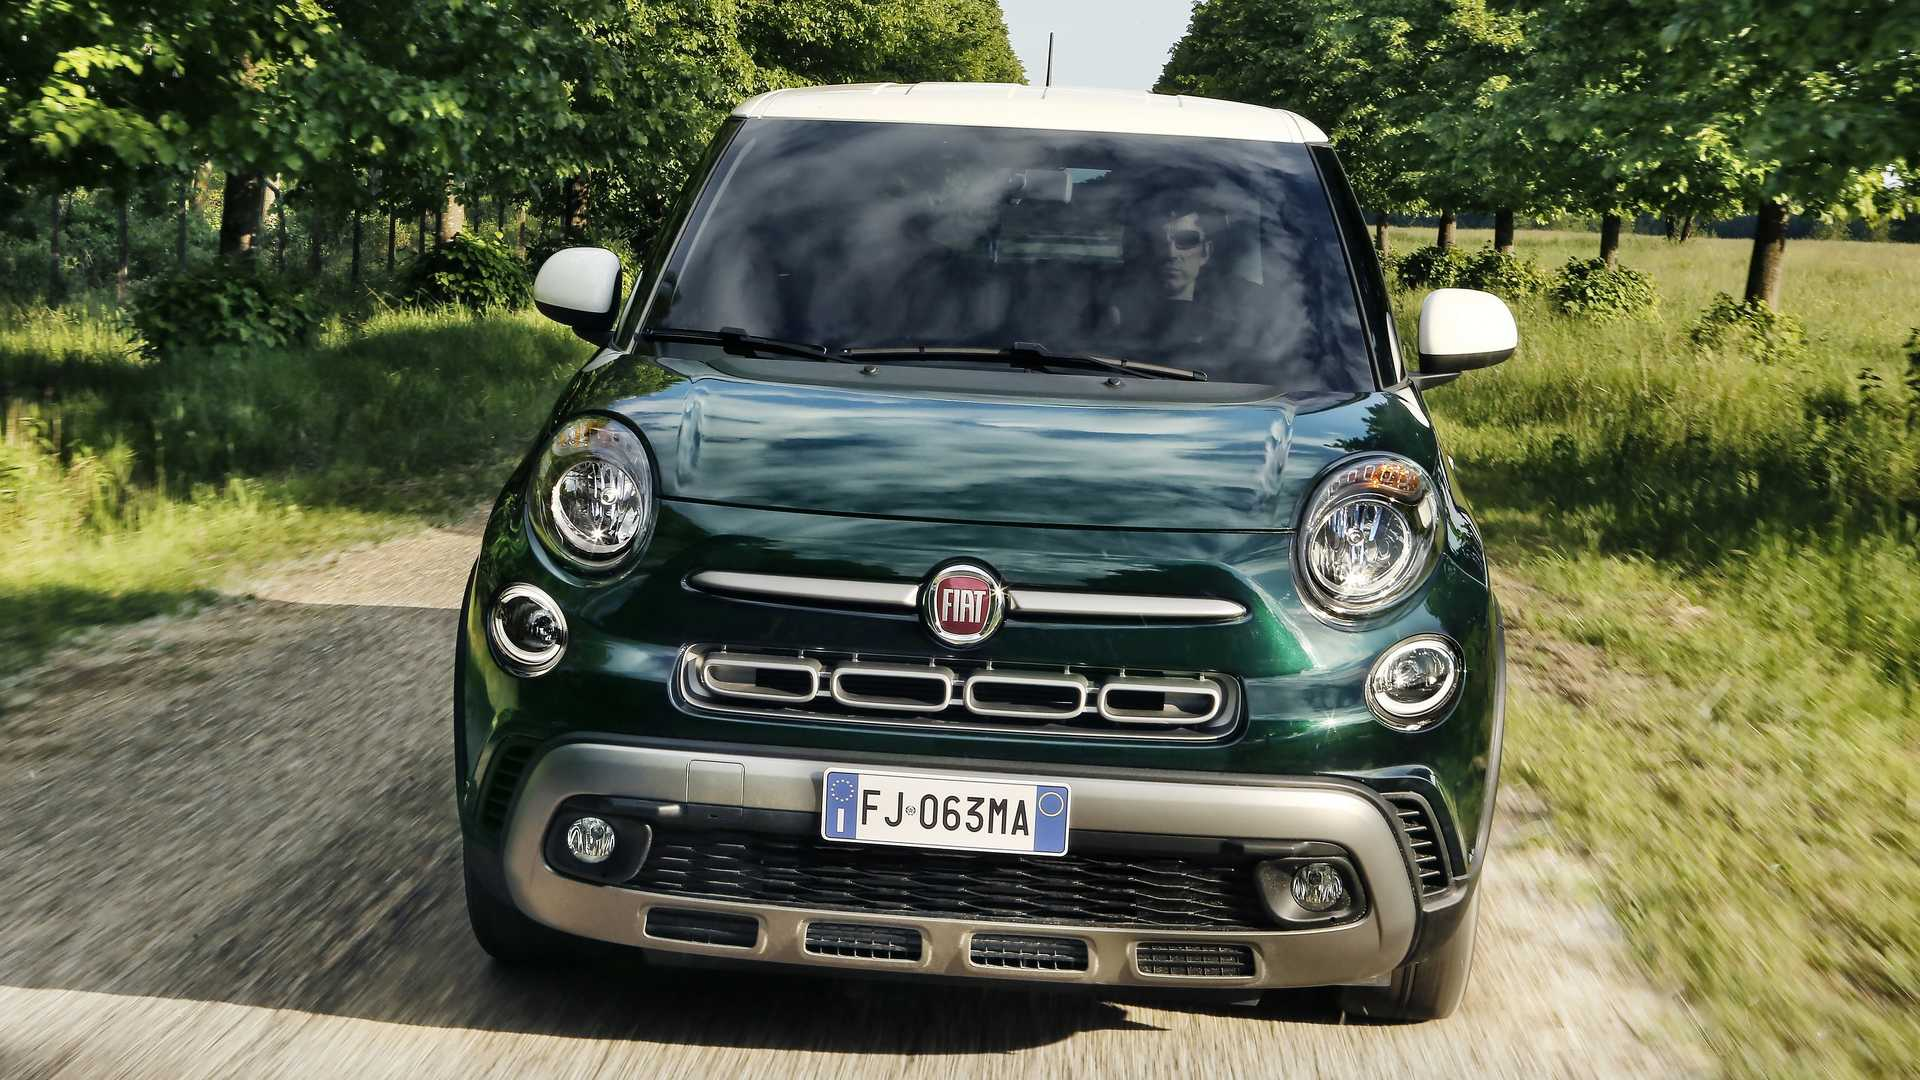 2018_Fiat_500L_cross_facelift_07